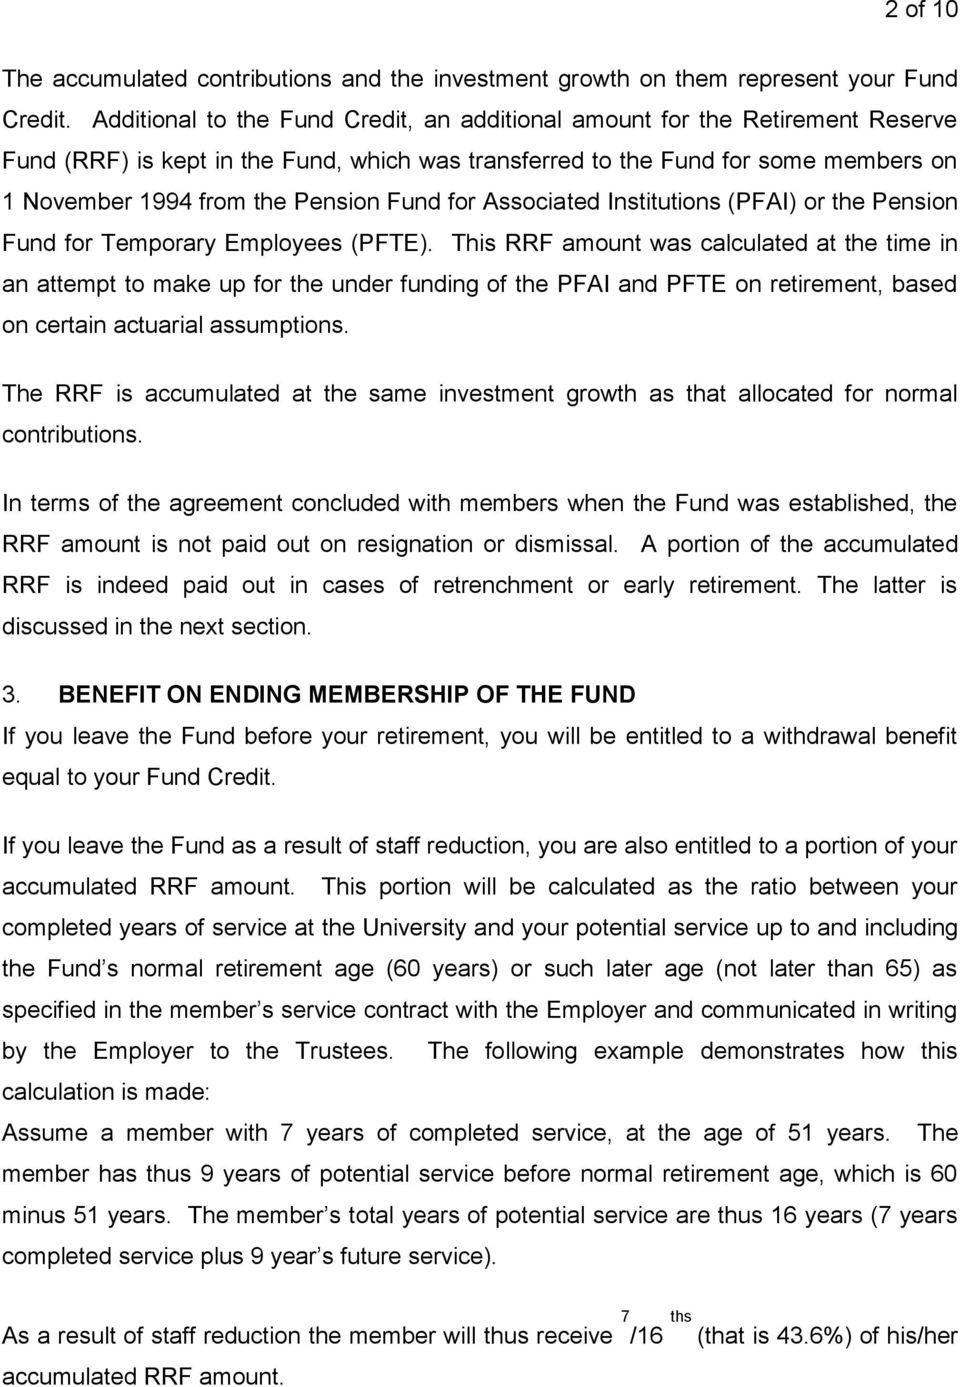 Fund for Associated Institutions (PFAI) or the Pension Fund for Temporary Employees (PFTE).